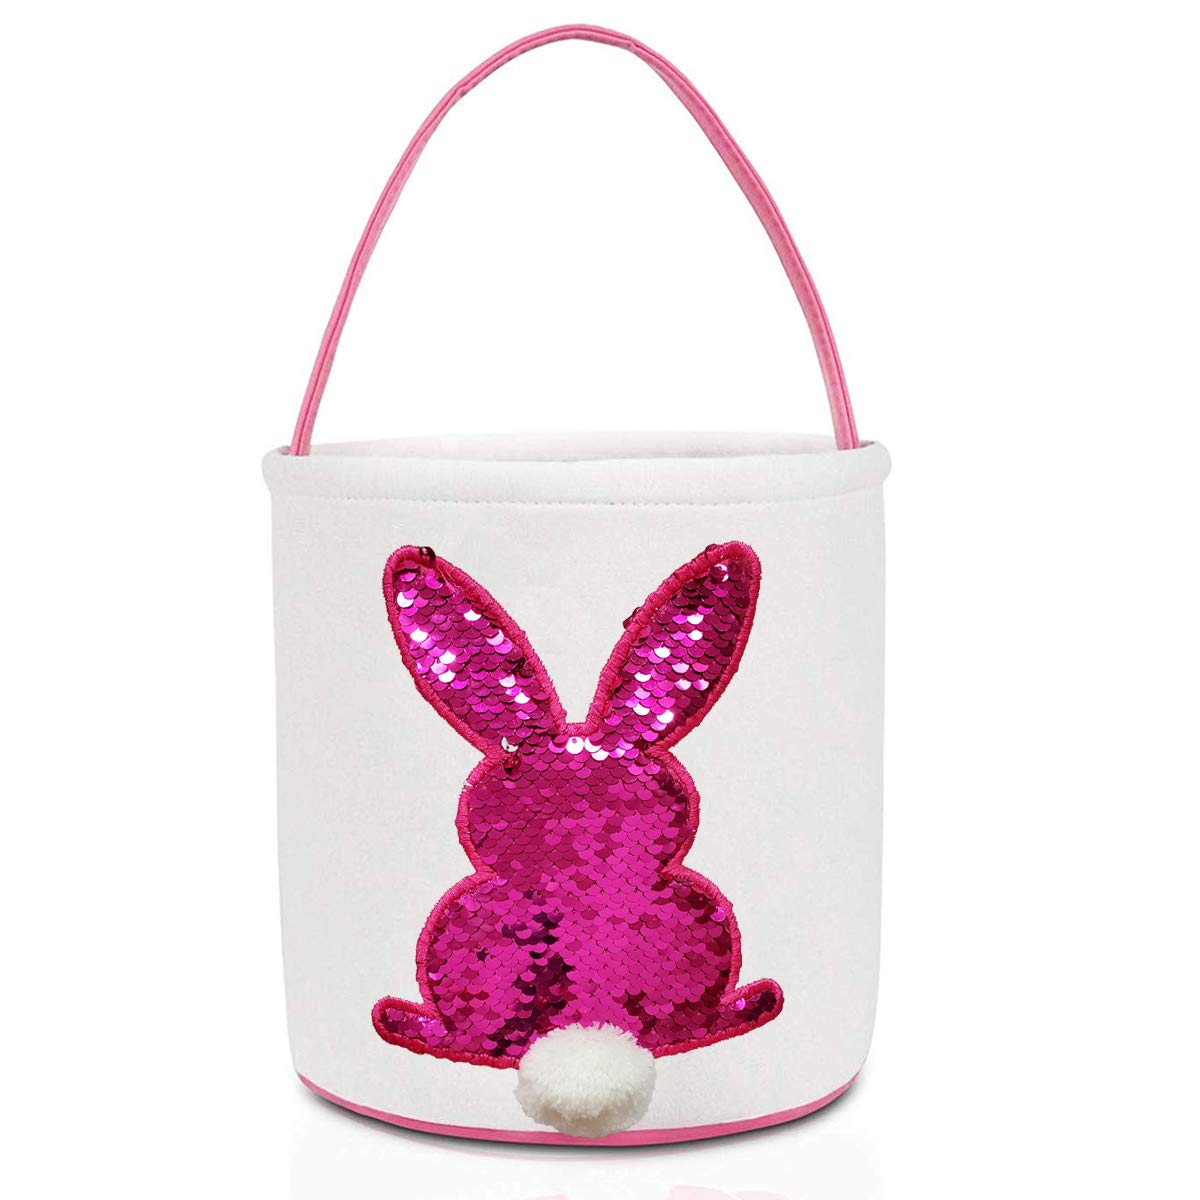 Poptrend Easter Basket Bags Eggs Kids for Gift Max 66% OFF Baskets Sale Bu